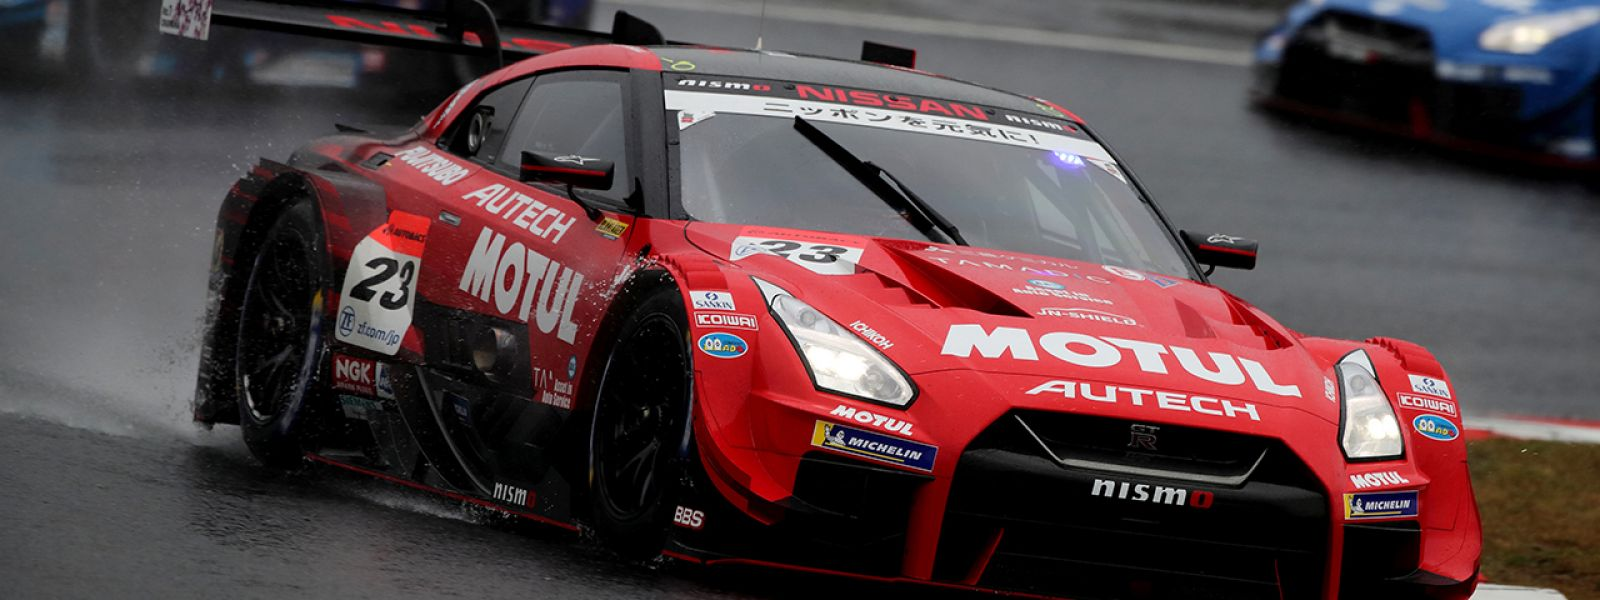 TouringCarTimes - The fastest touring car news since 1995